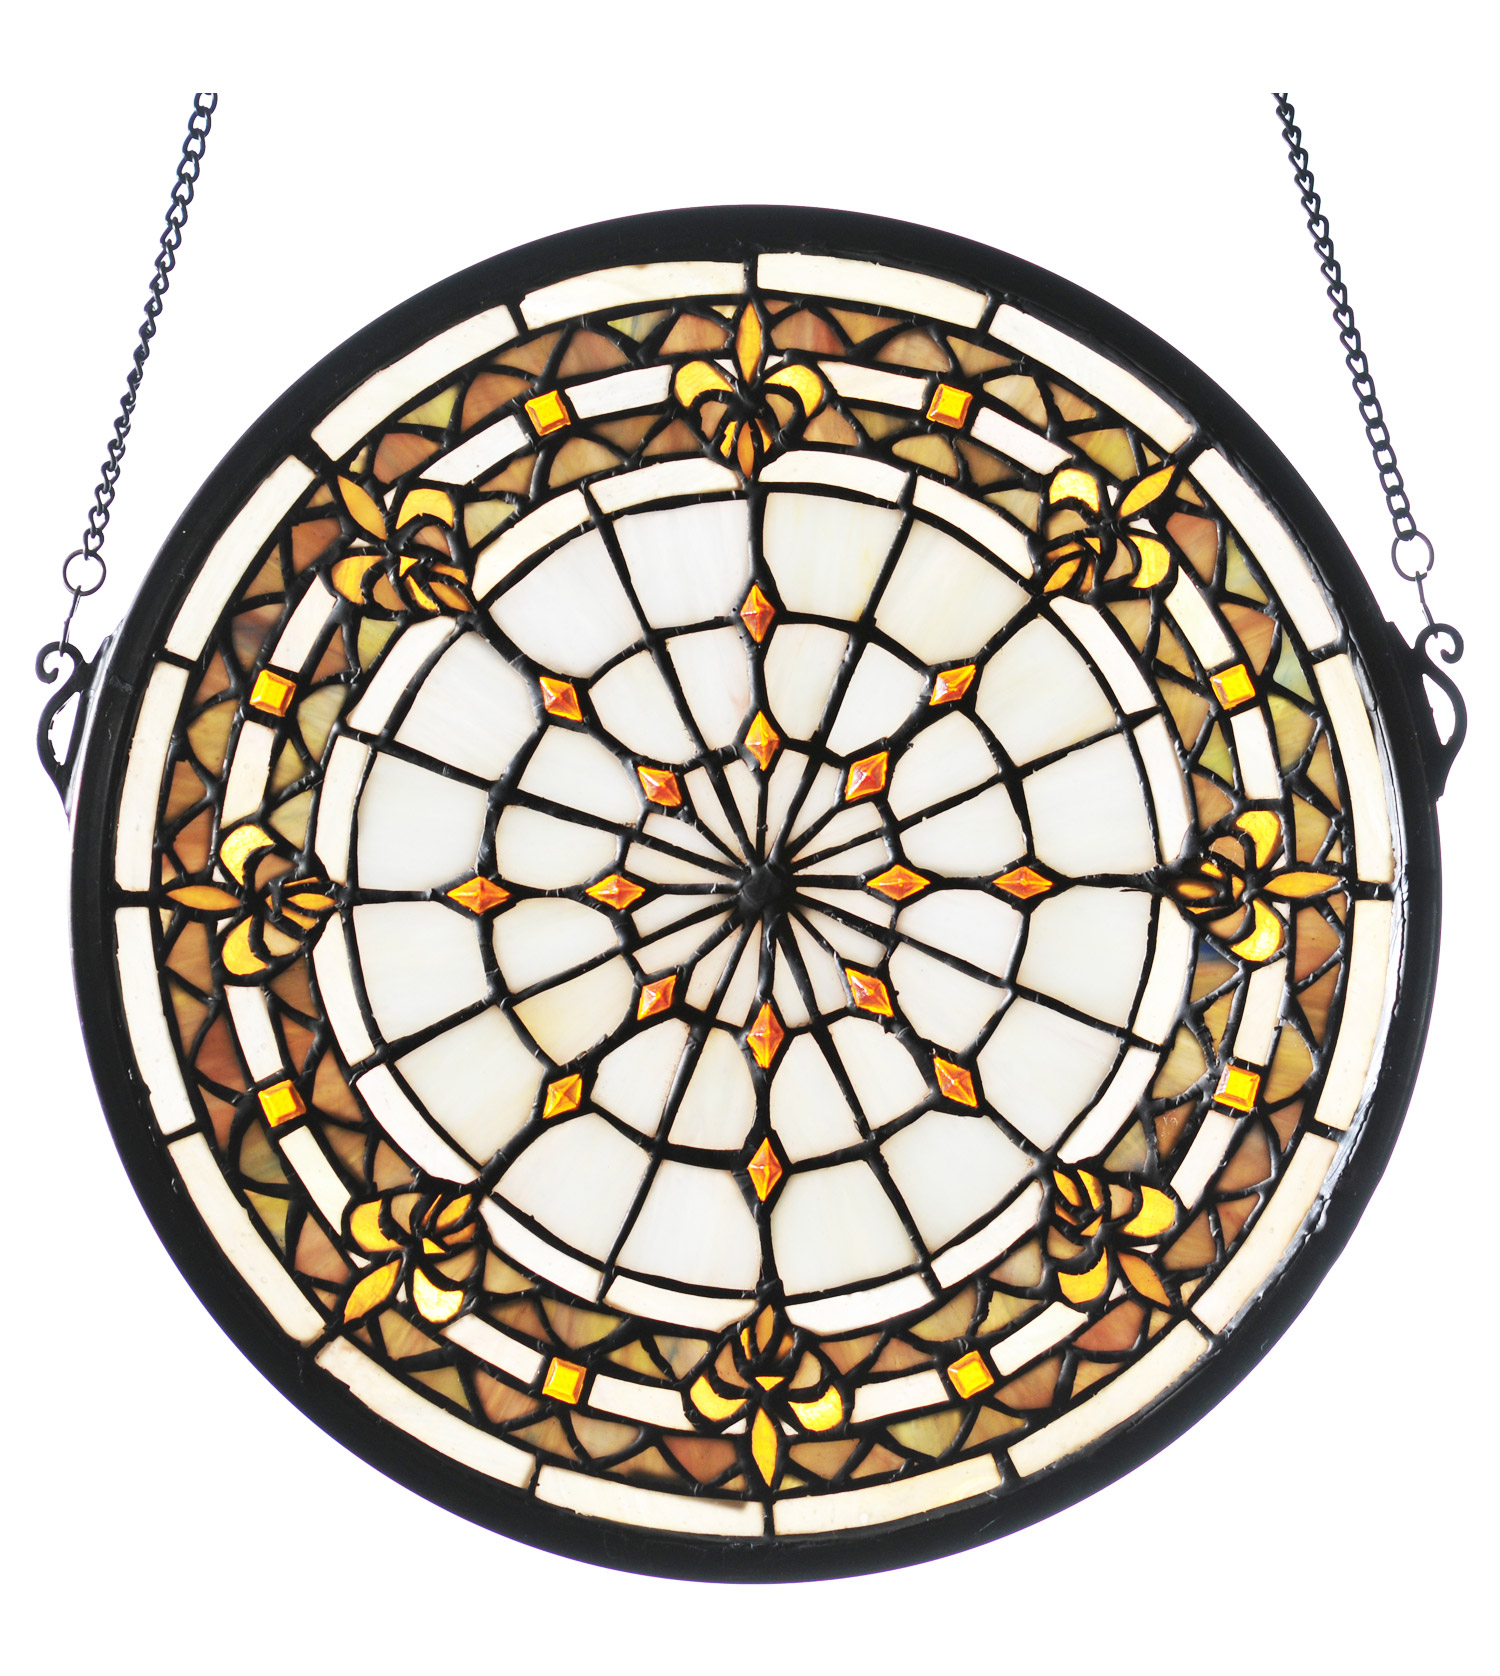 deacon large libraries handle medallion glass stained mit the watercolor for design image sv